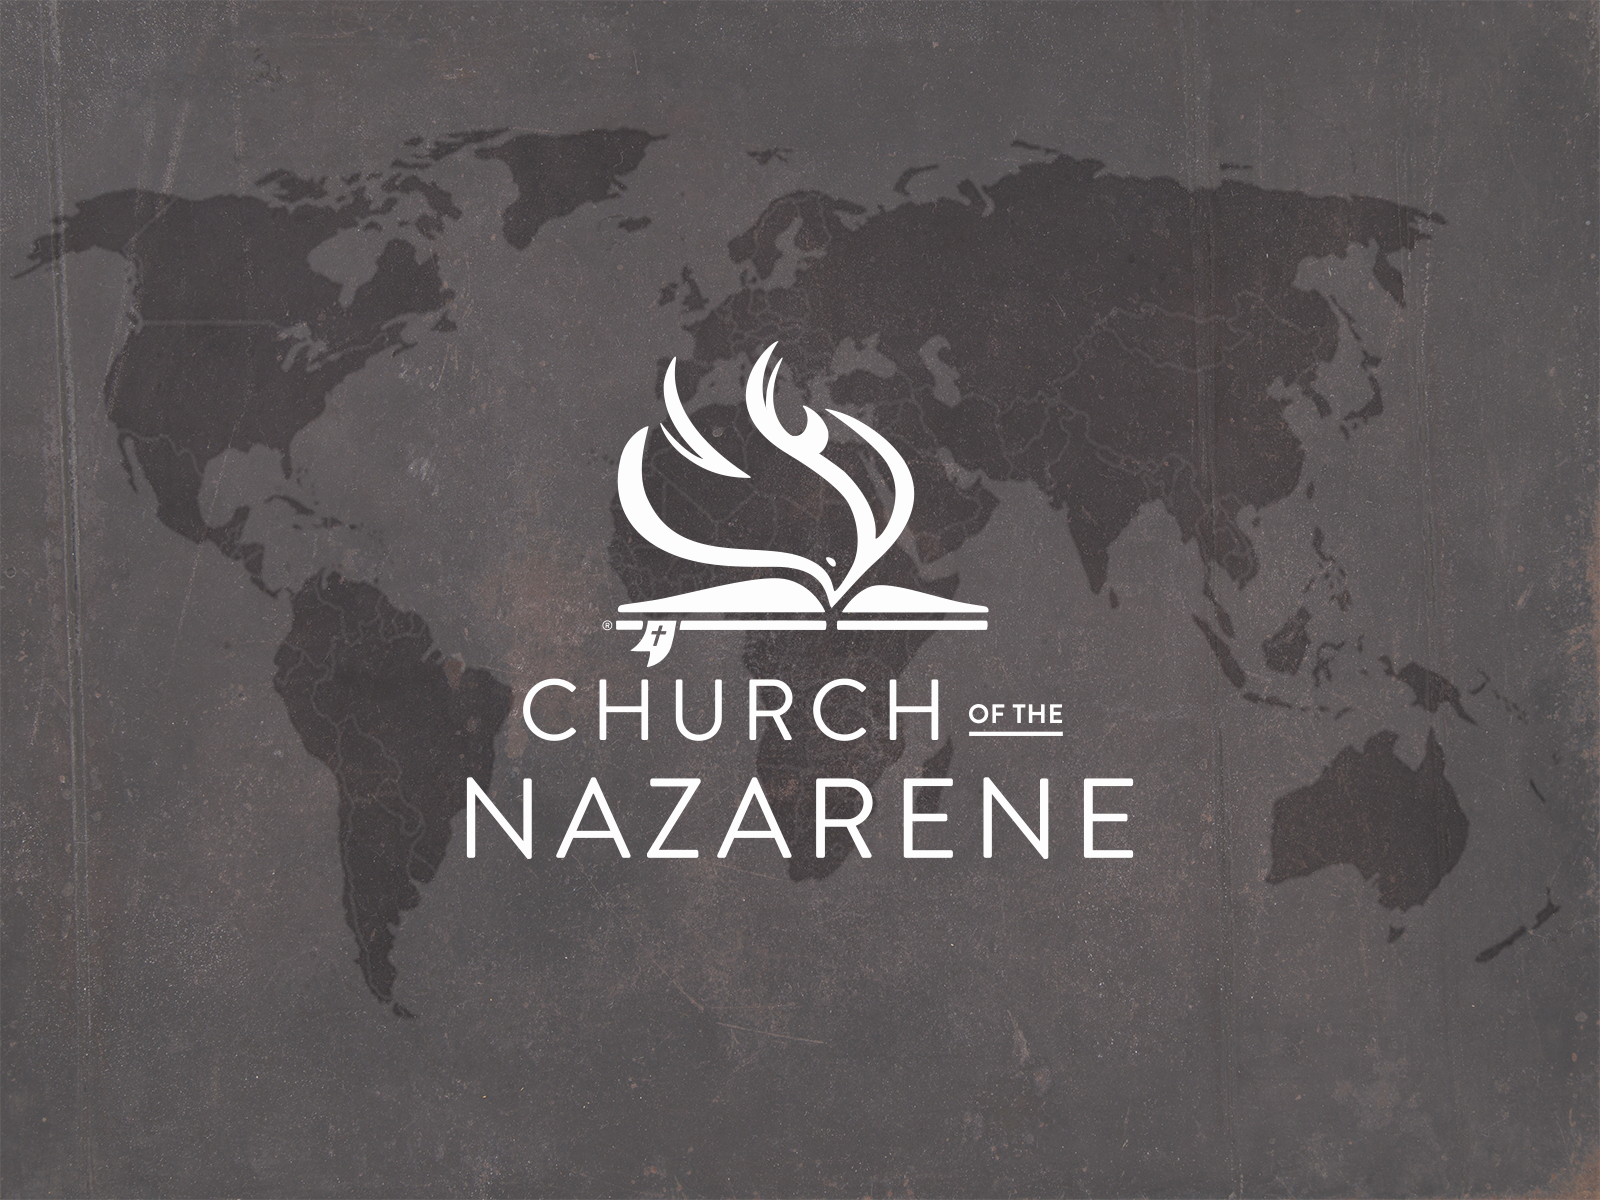 Nazarene Bground 2 English